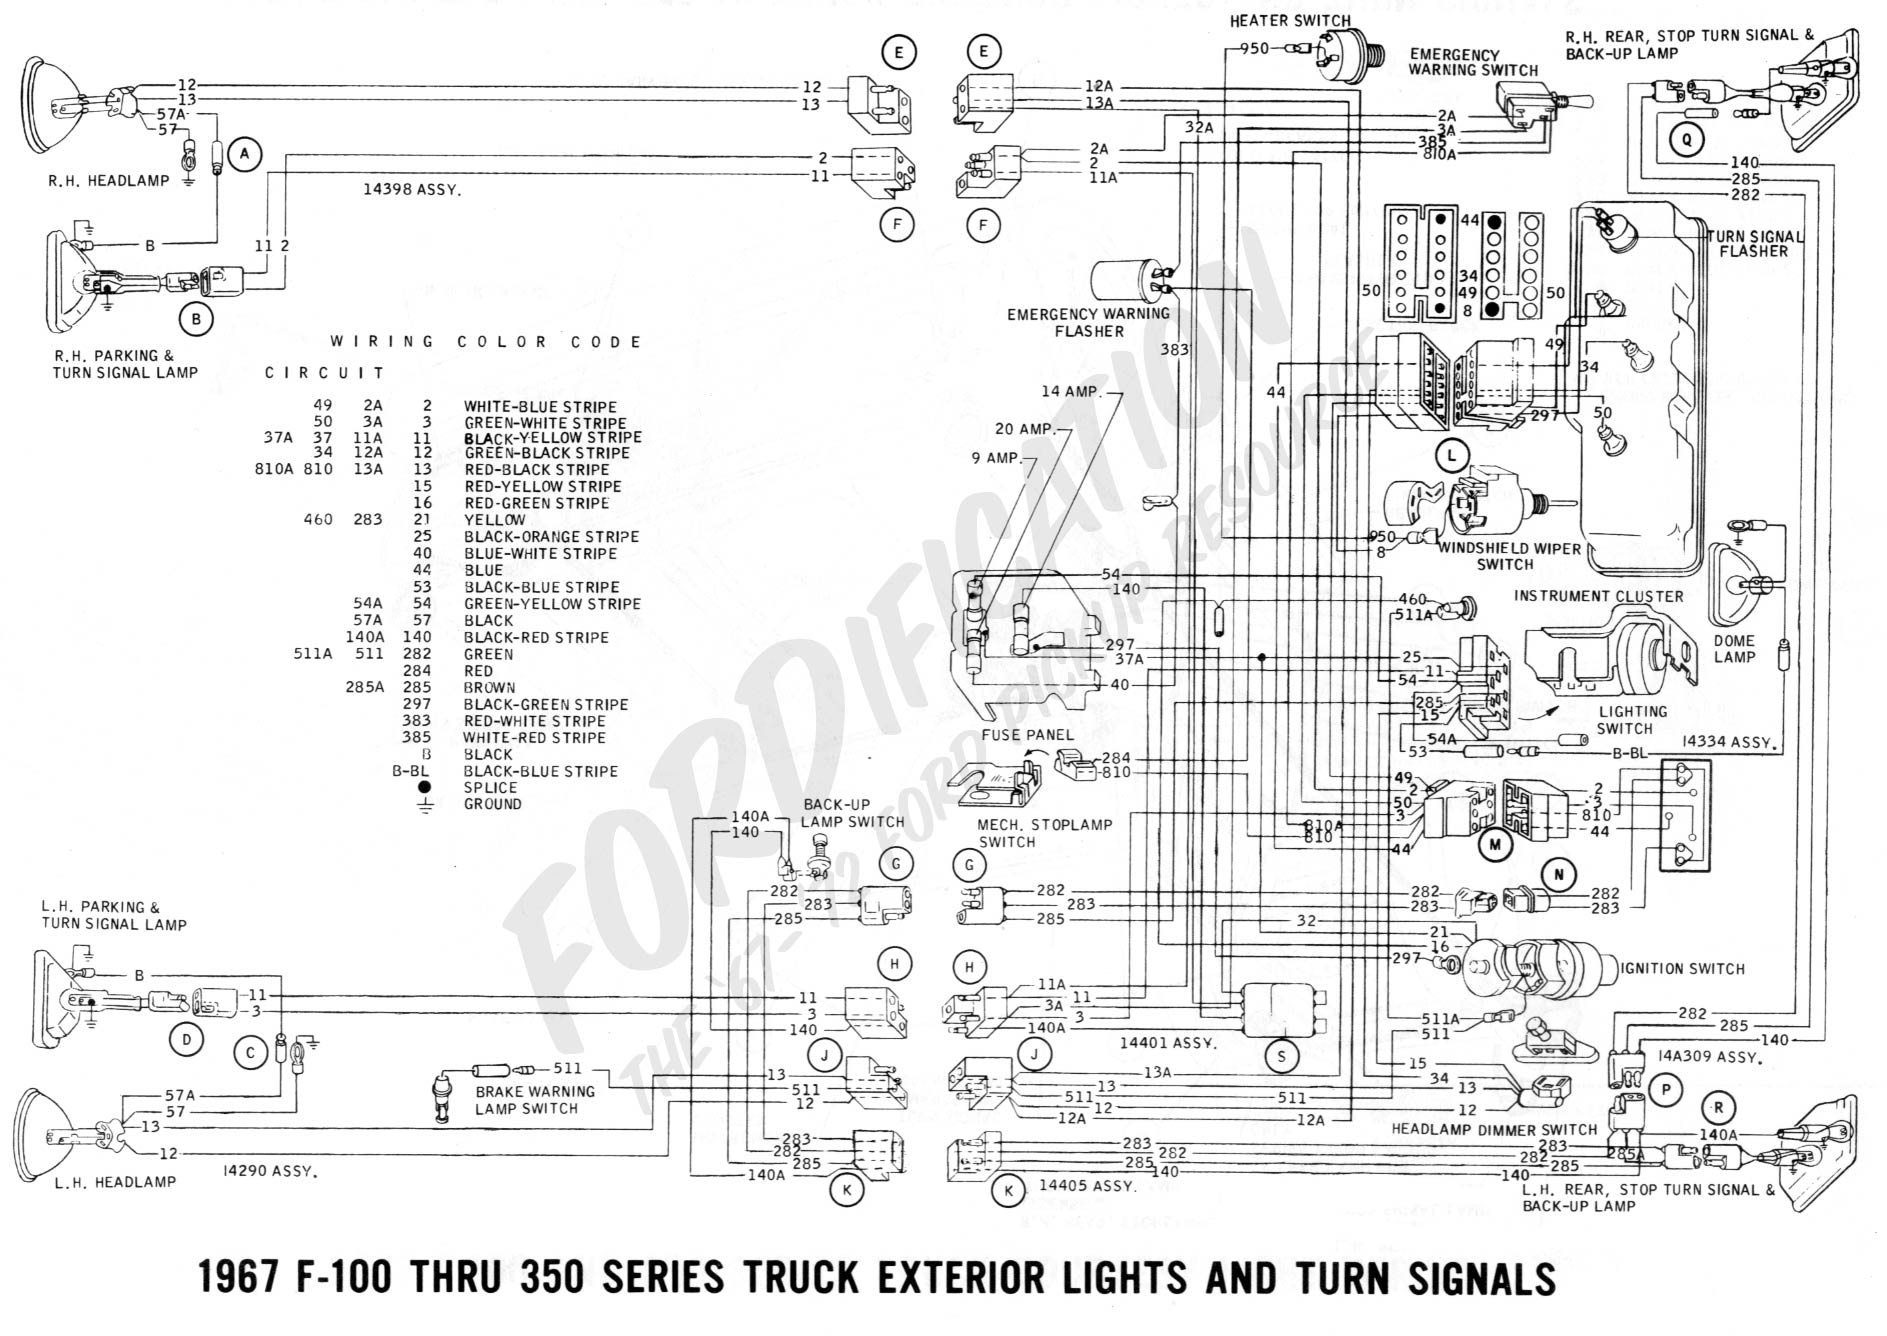 1999 ford f350 7 3 wiring diagram seven pin trailer plug alternator library truck technical drawings and schematics section h f250 fuse